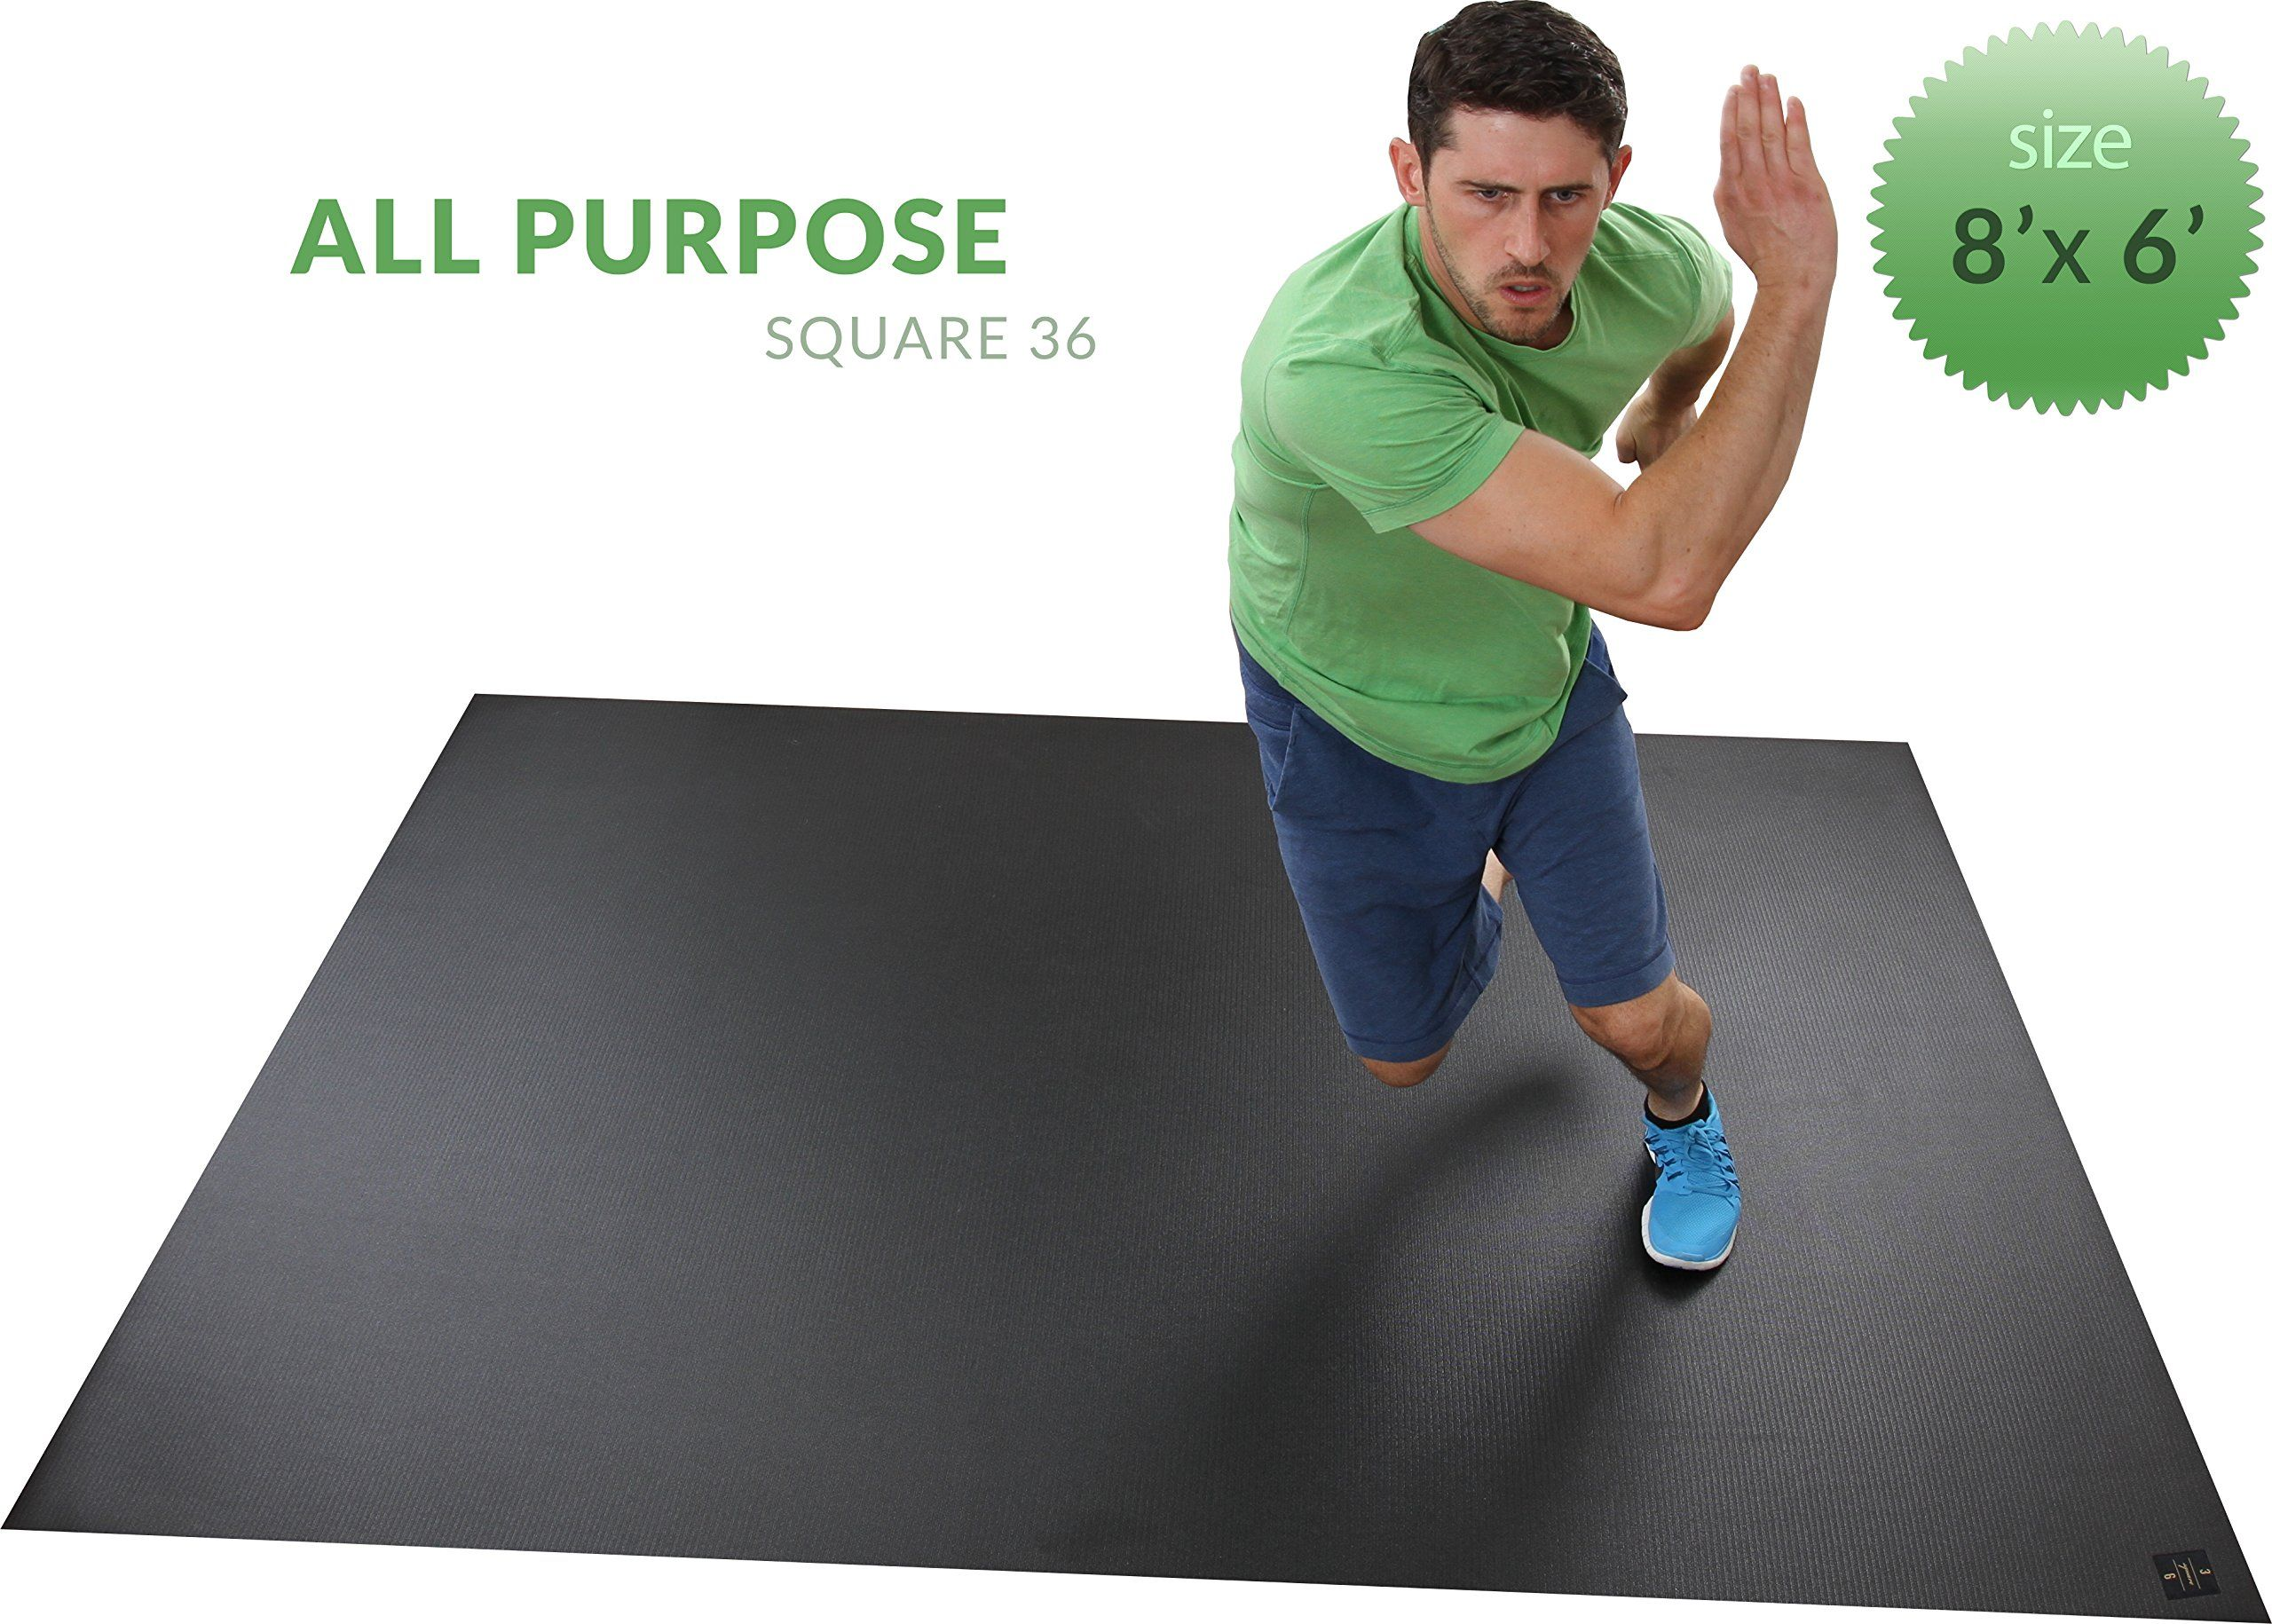 or amazon combination treadmill mma work dp surfacing the equipment x aerobics fitness large ft for out mats yoga is plyometrics perfect com mat cardio exercise